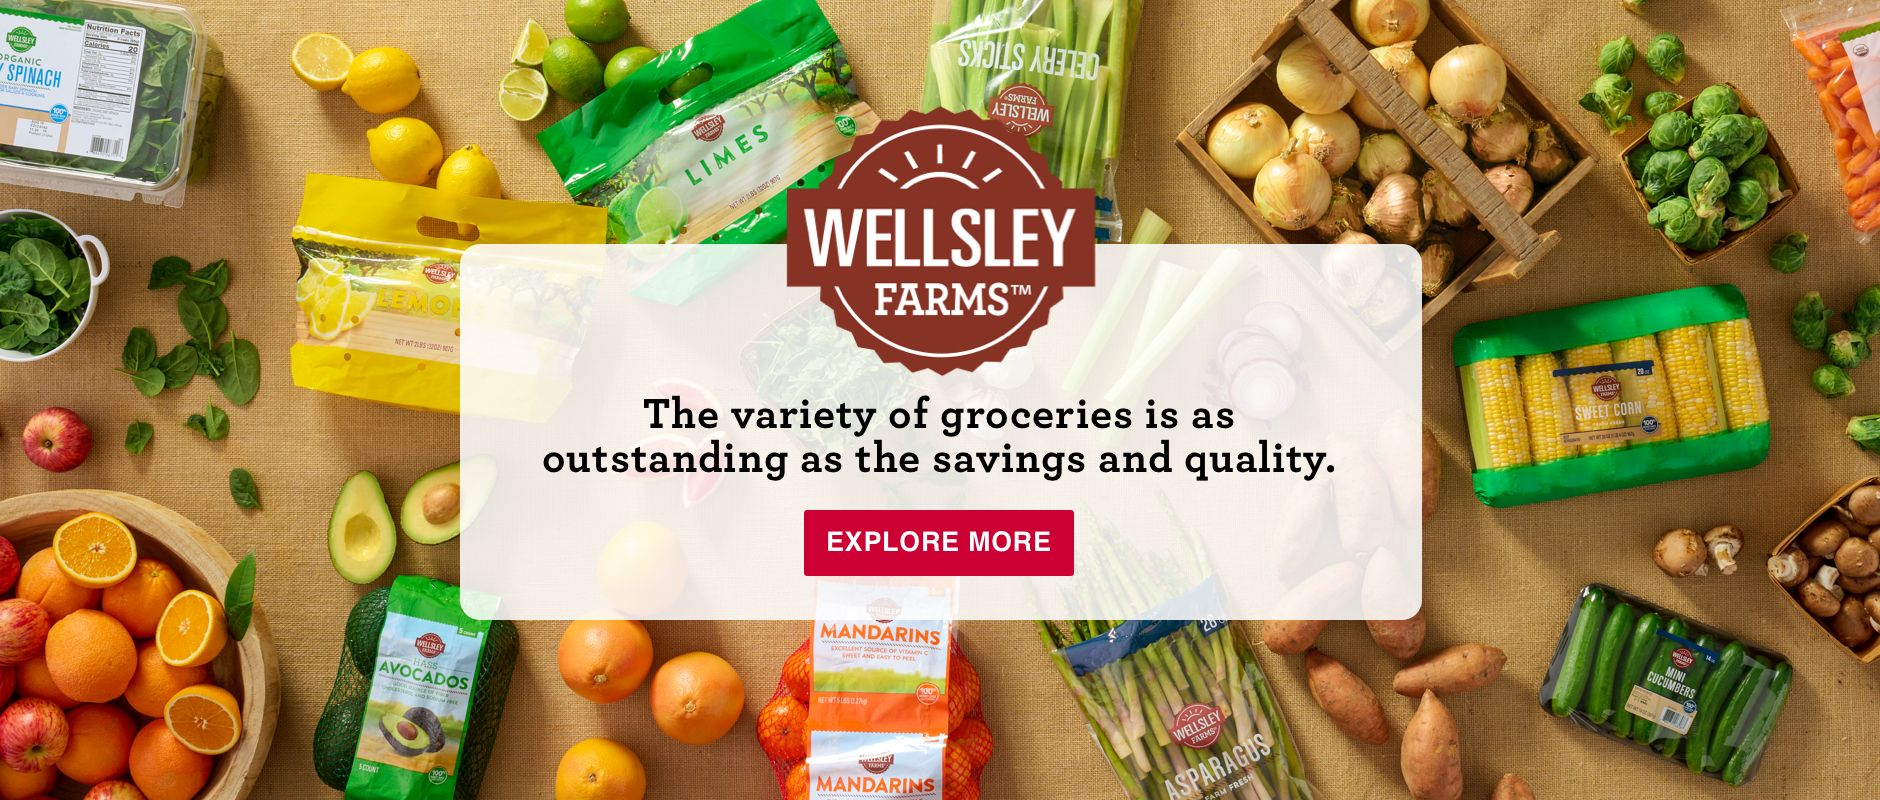 Wellsley Farms Logo. The variety of groceries is as  outstanding as the savings and quality. Click to Explore More.